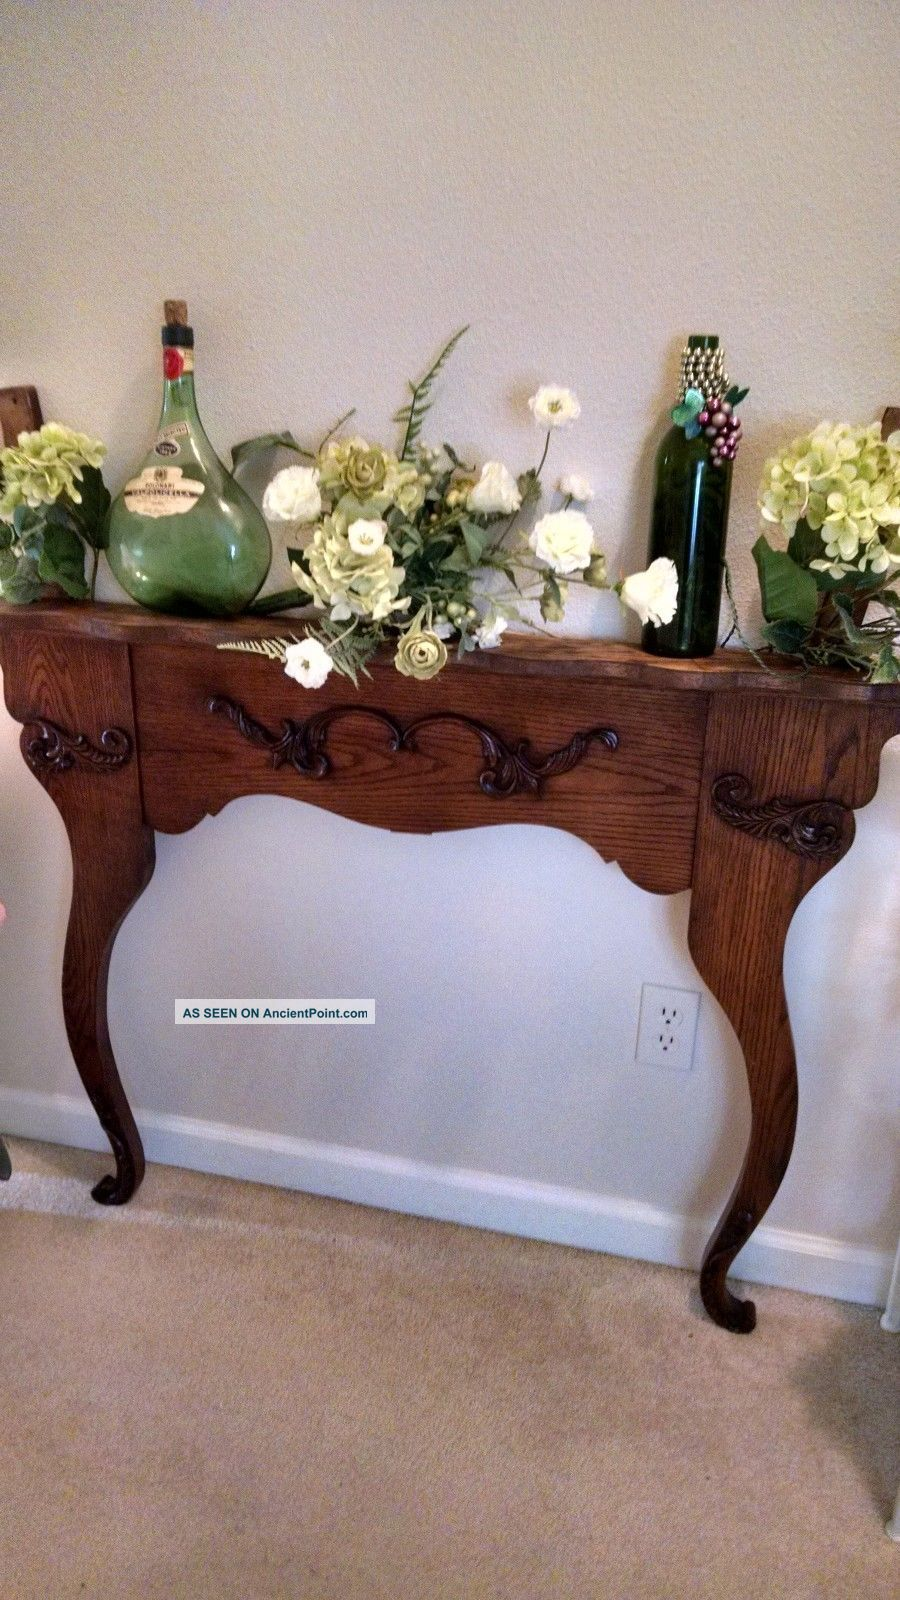 Antique Upcycled Carved Oak Dresser Harp As Hall Table Or Shelf 1800-1899 photo